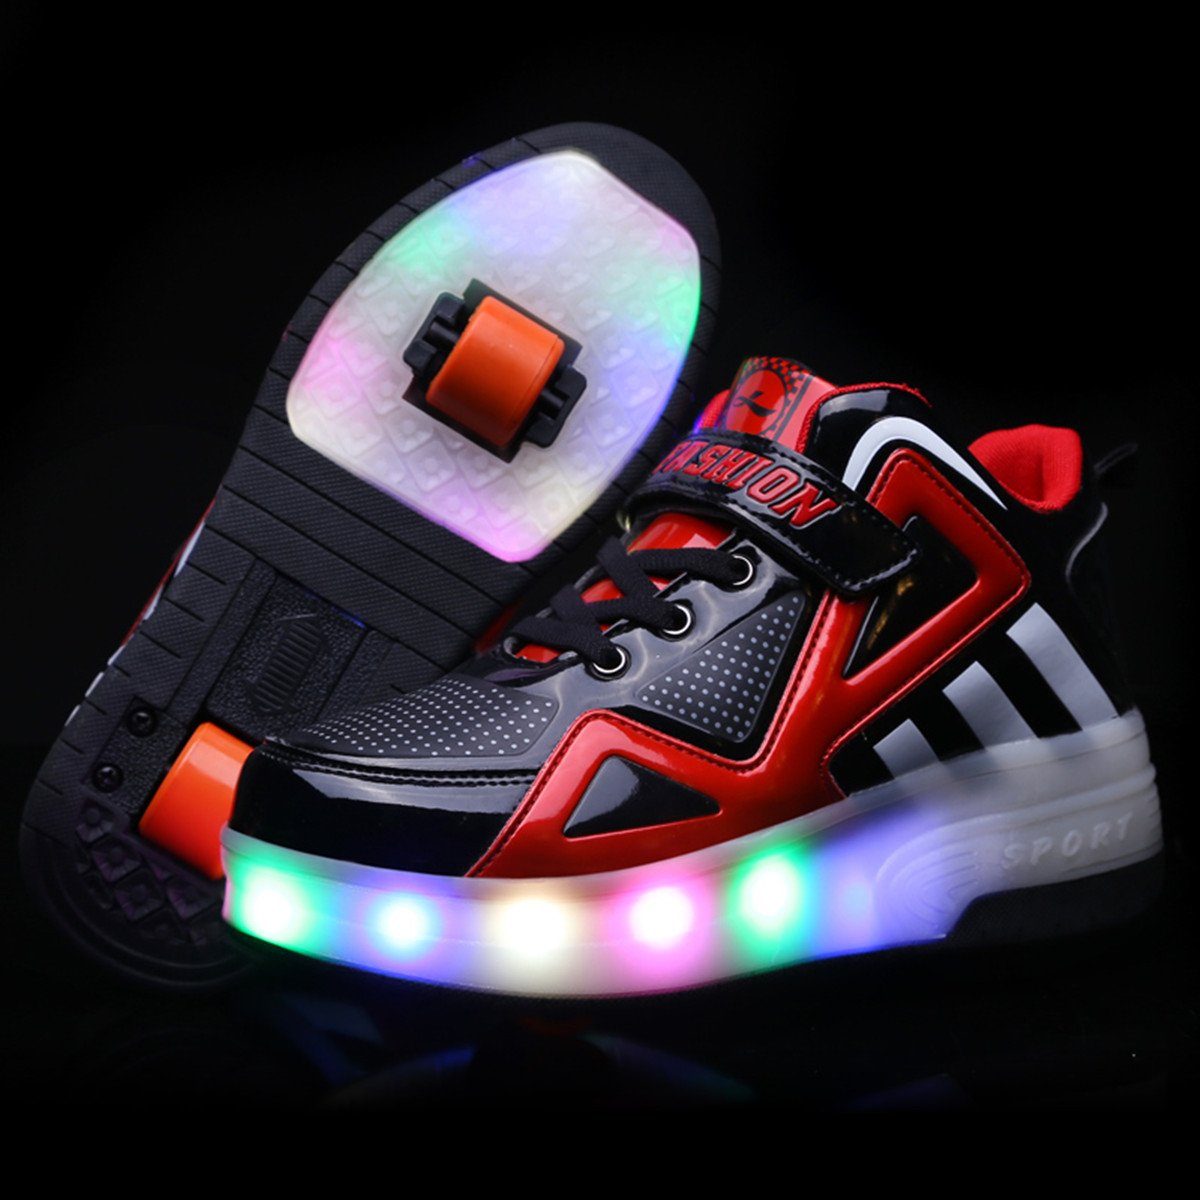 vmate shoes